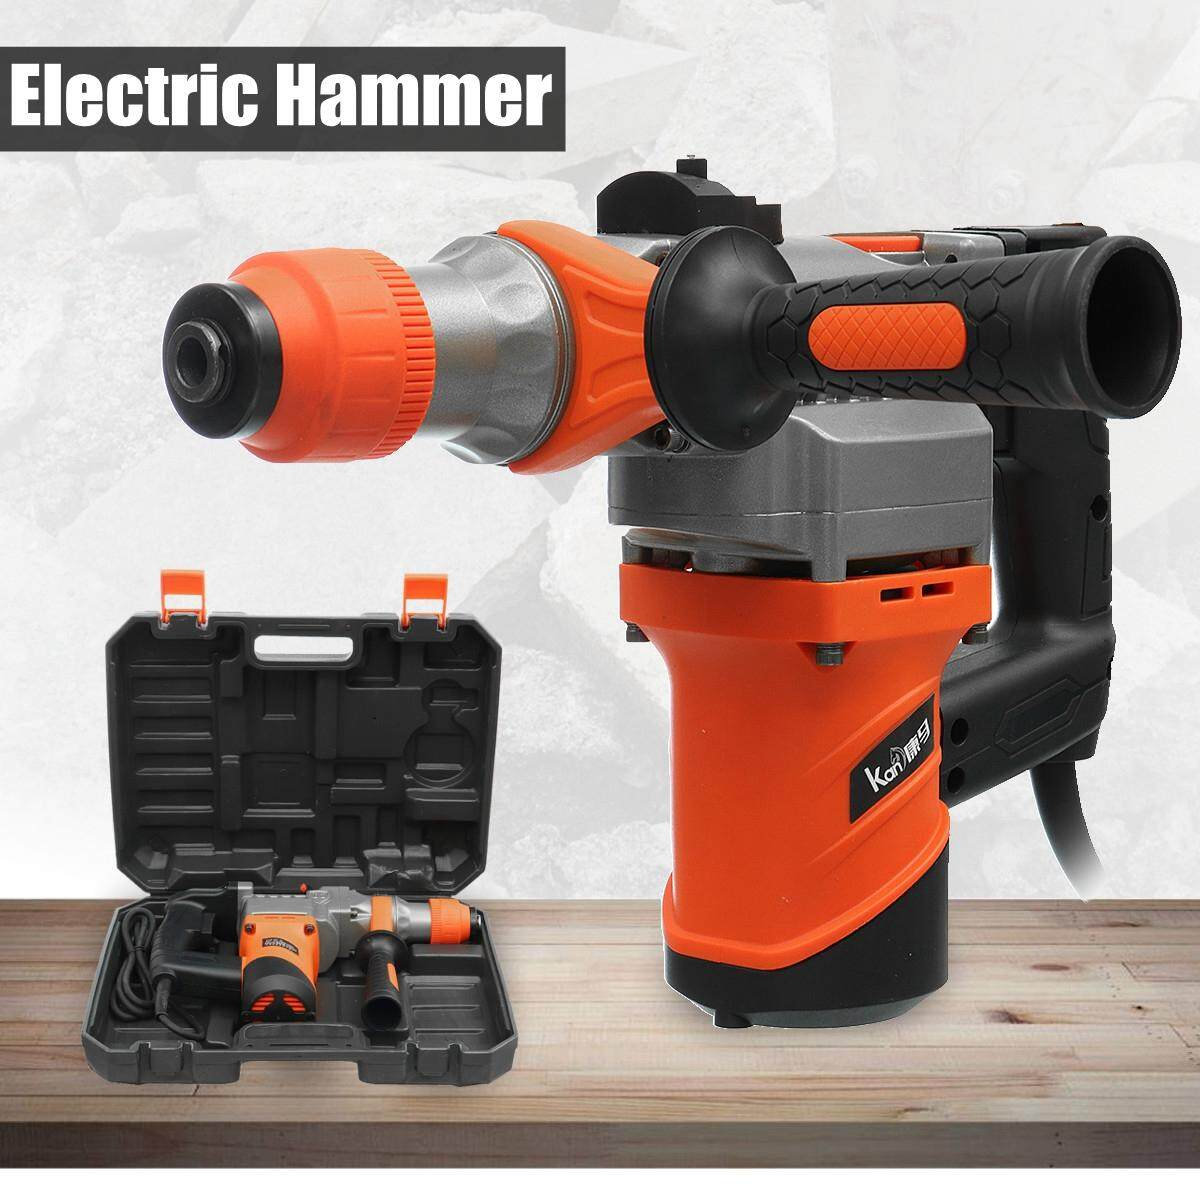 Home Demolition Hammers Buy At Best Price Bor Rotary Hammer Bosch Gbh 3 28 Dre 1680 2280w Watt Electric Jack Concrete Breaker Punch Metal Box